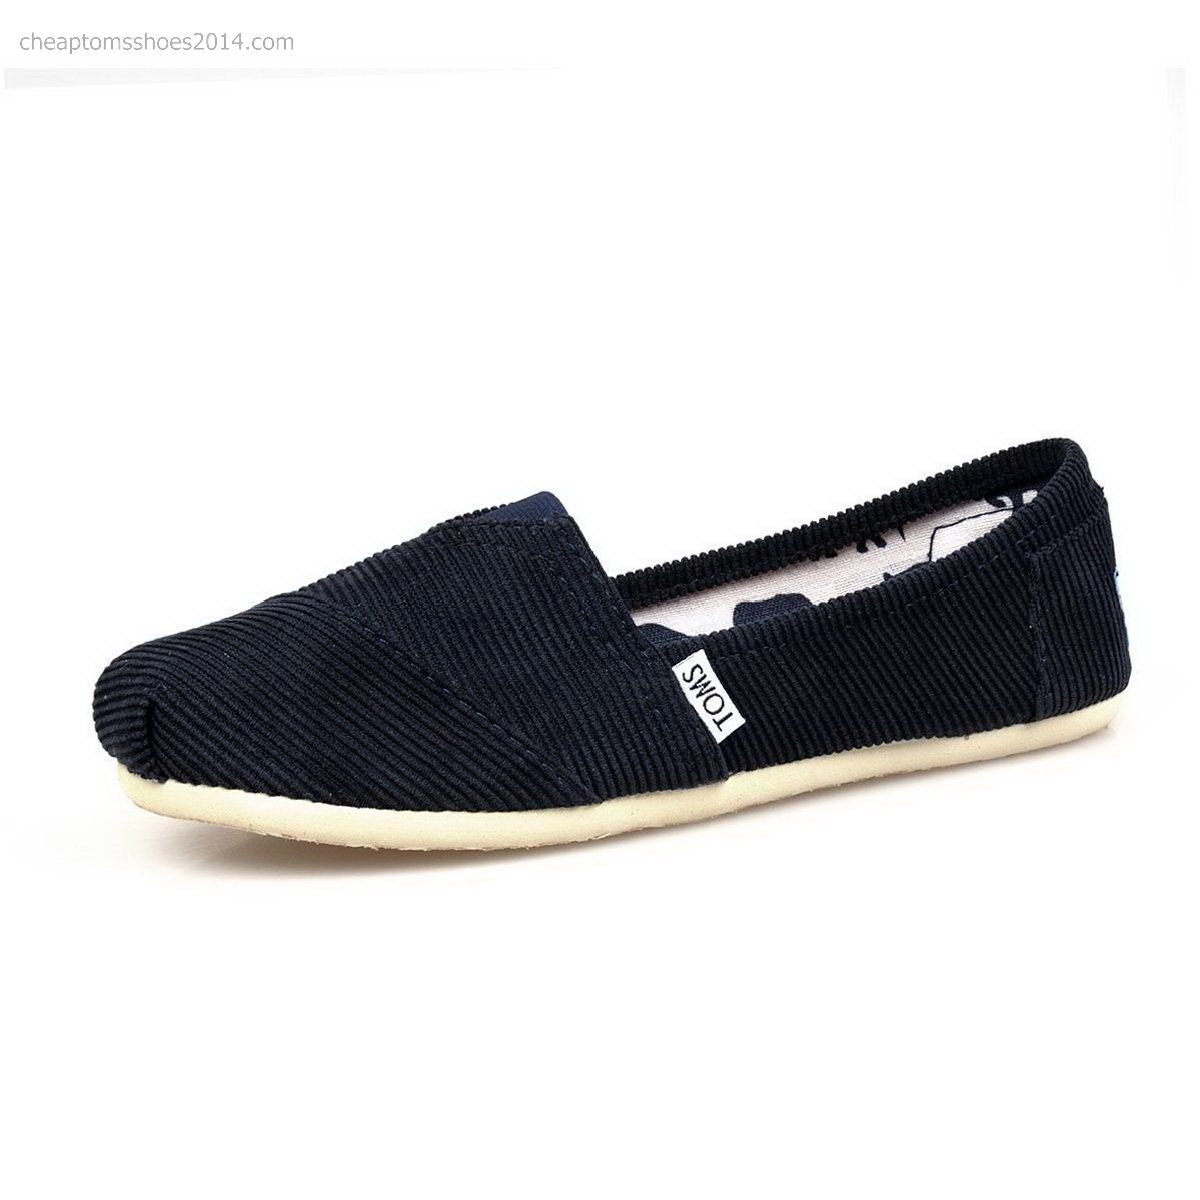 Inkwell Womens Canvas Toms shoes consists of a wide range of styles that vary in functionality and design always seeking to satisfy the different personalities, the particular needs of each. Now, you can find this toms canvas,it is comfortable, flat and full of style.